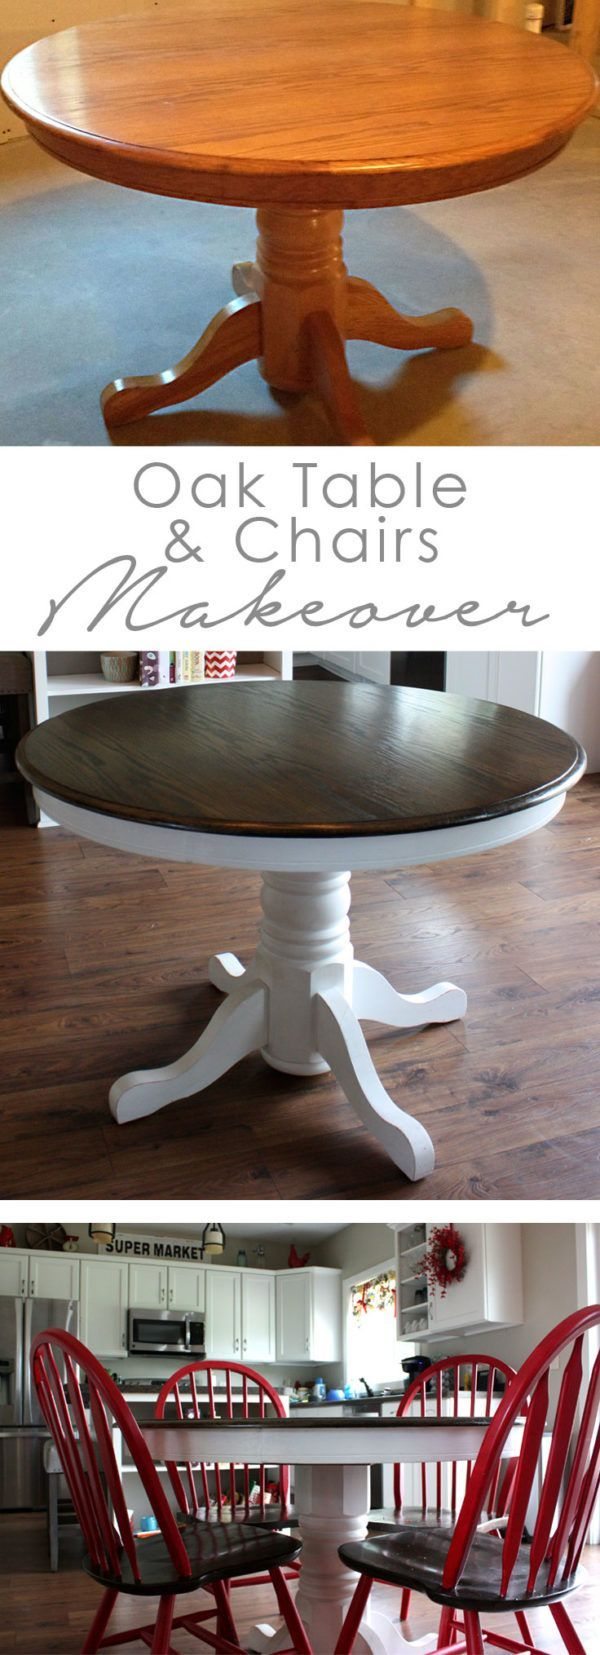 painted oak table oak kitchen chairs DIY Oak Table and Chair Makeover